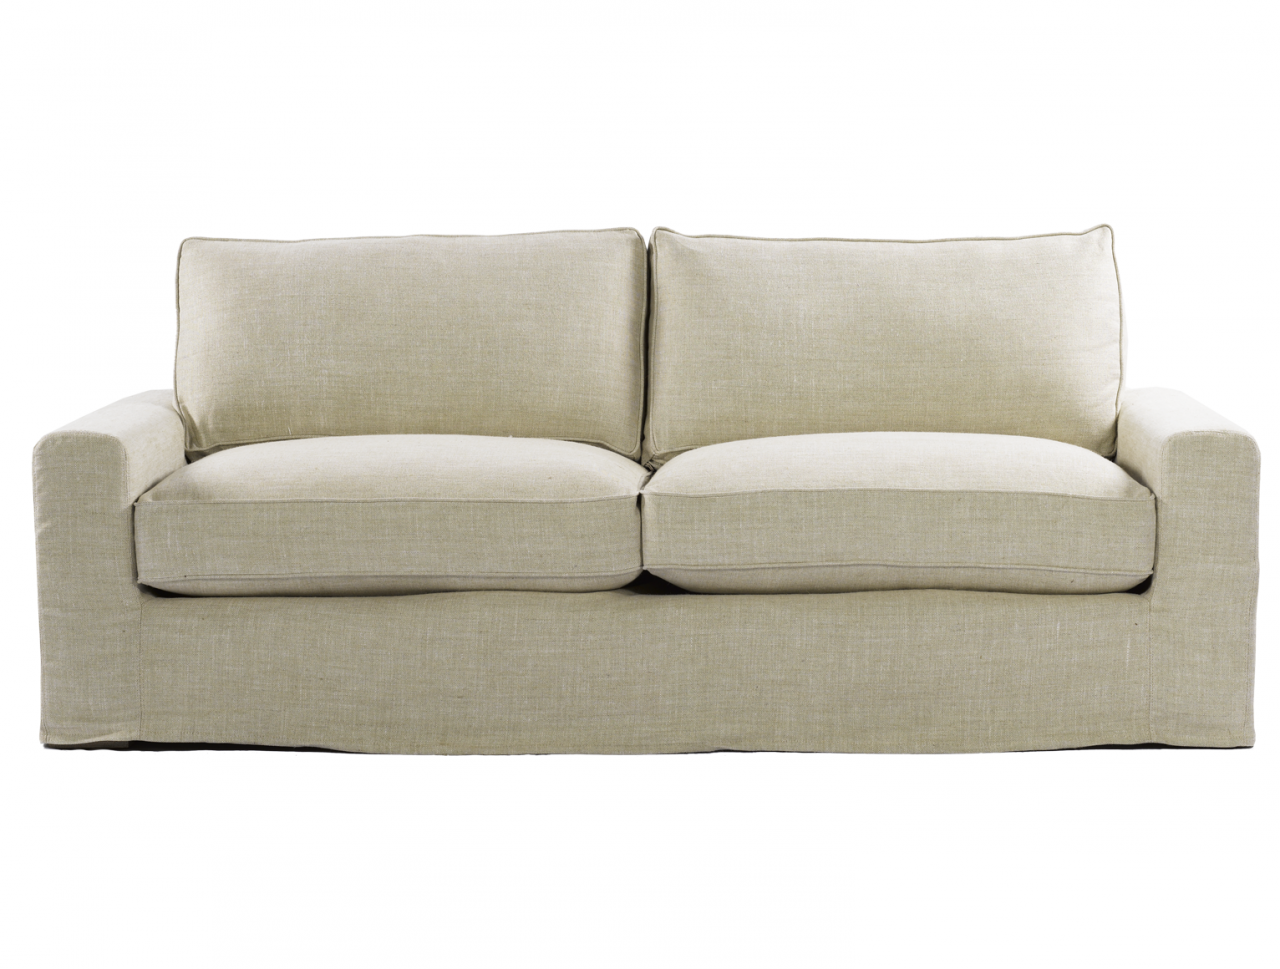 Furniture u0026gt; Living Room Furniture u0026gt; Upholstered Sofa